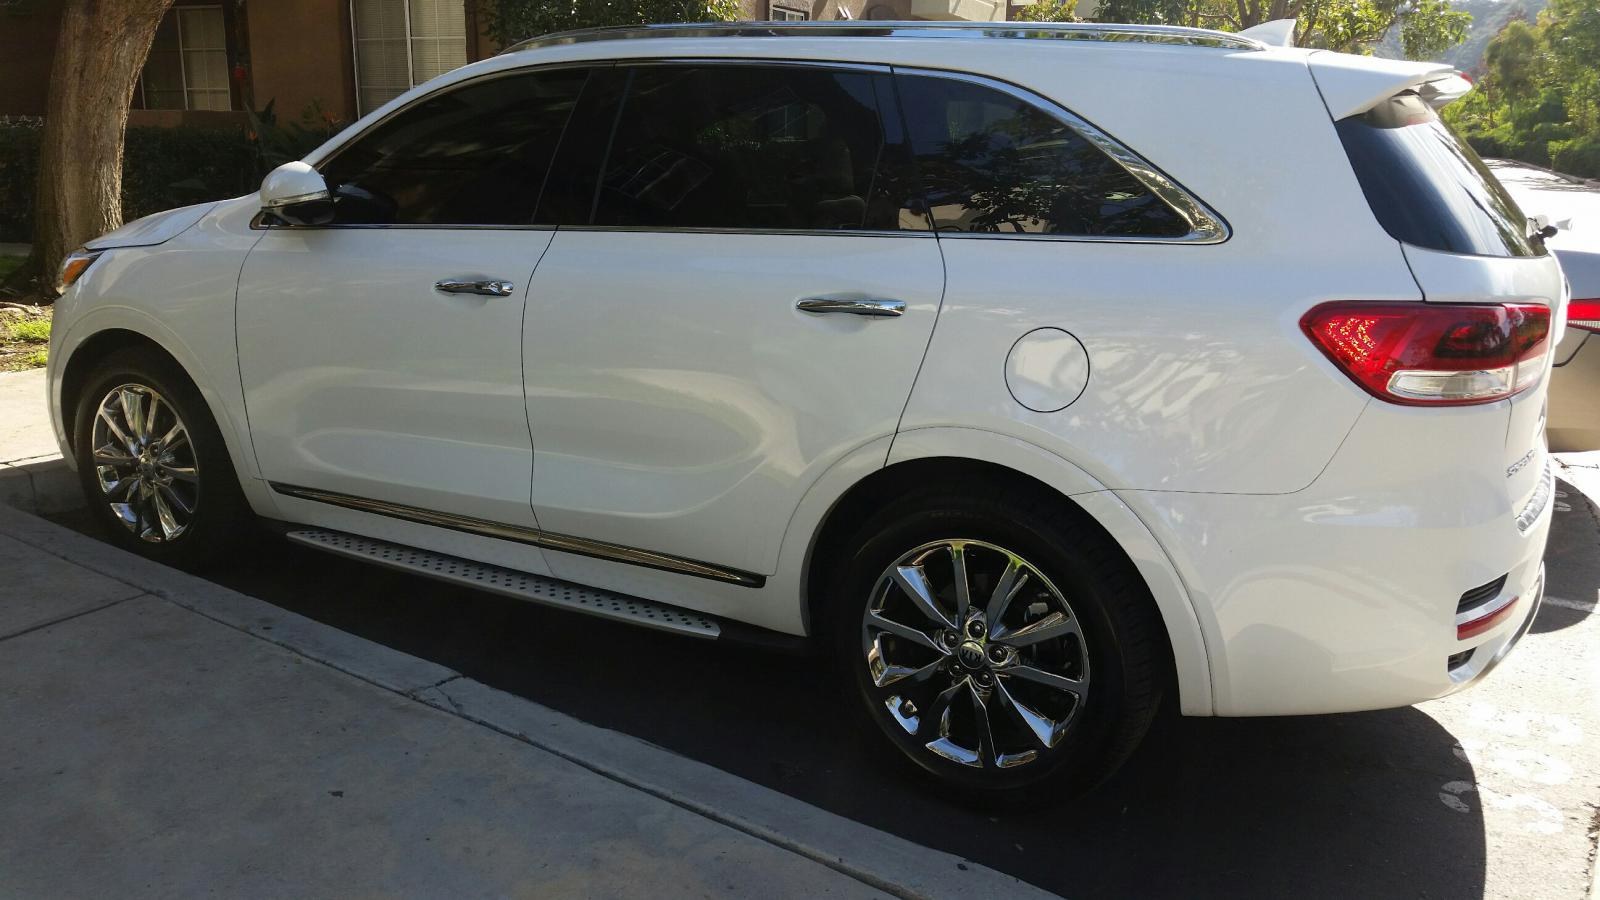 size for solution cargo and row larger kia name image views forum sorento version hi mat click